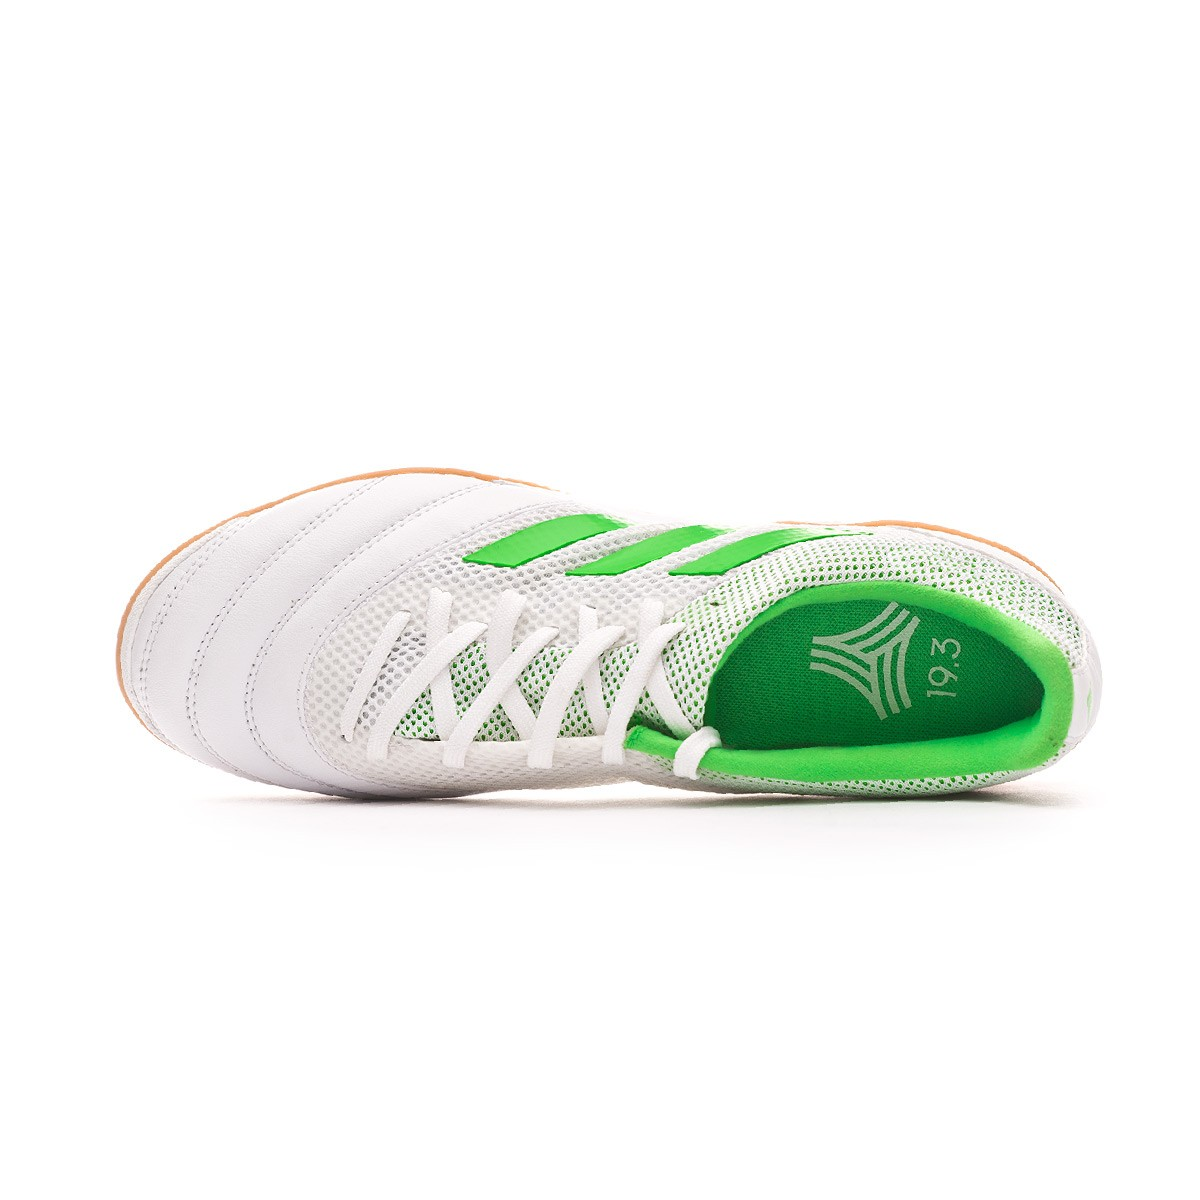 9a652e49d Futsal Boot adidas Copa Tango 19.3 IN Sala White-Solar lime - Football  store Fútbol Emotion